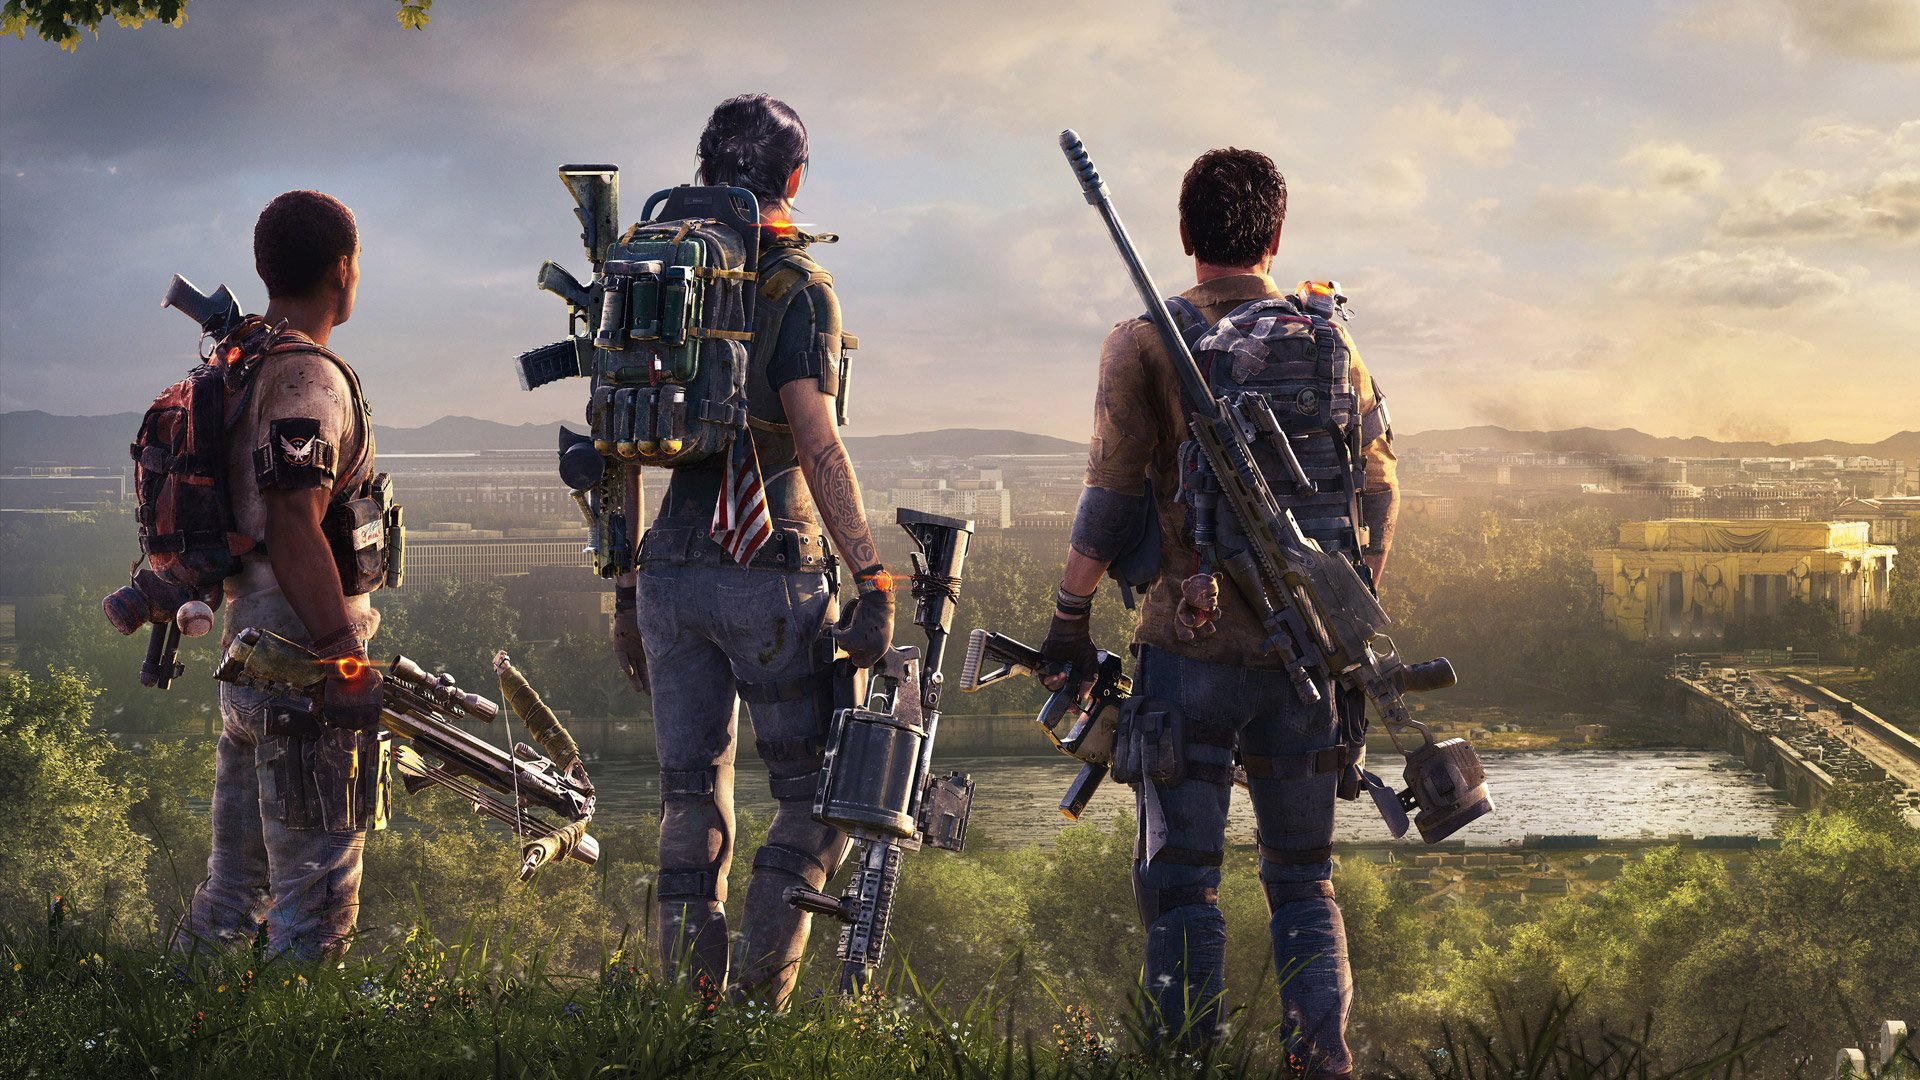 Noteworthy games releasing on Xbox One in March of 2019 include Tom Clancy's The Division 2.